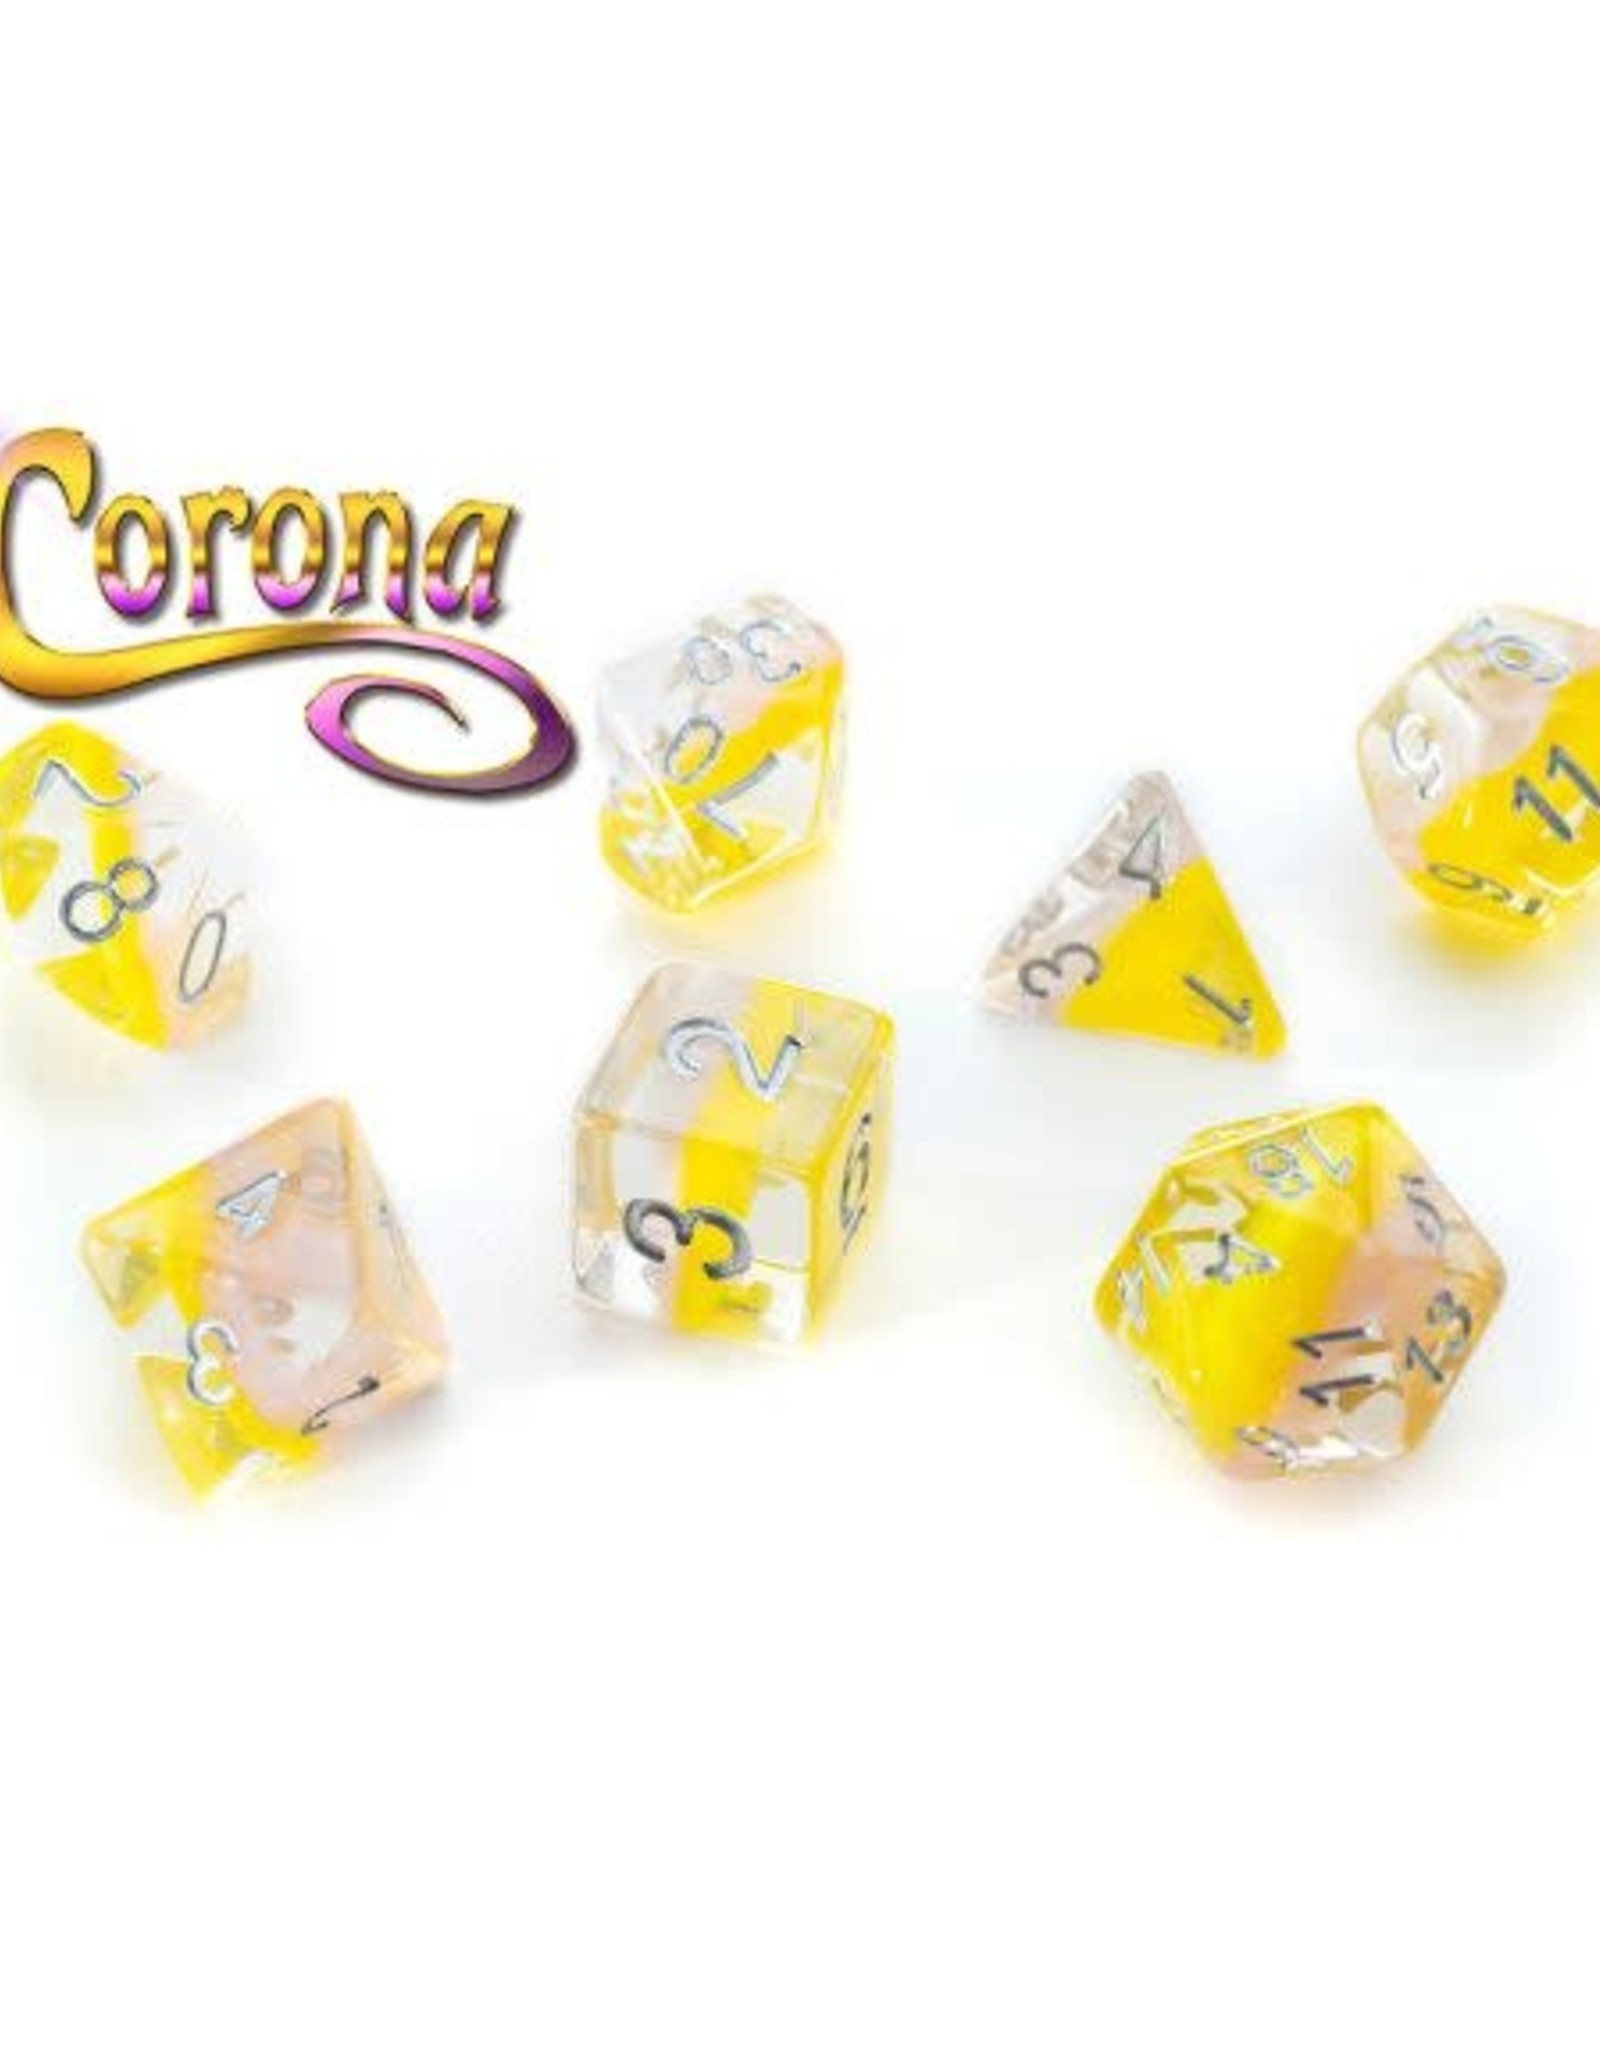 Gate Keeper Games Gatekeeper Dice Set: Corona (7)